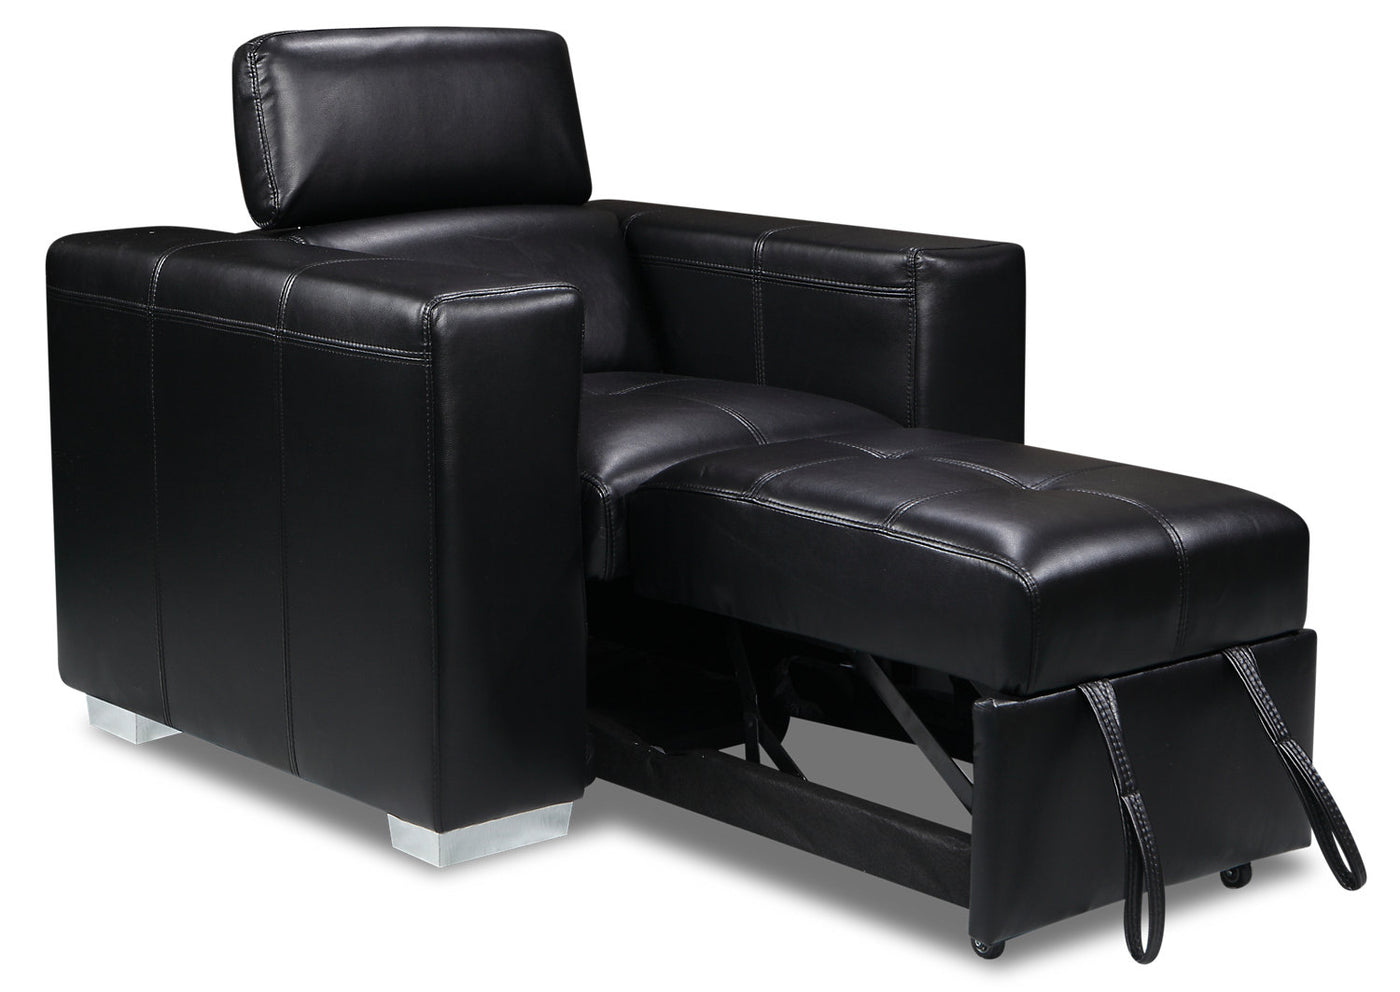 Picture of: Drake Leather Look Fabric Chair With Pull Out Ottoman Black The Brick